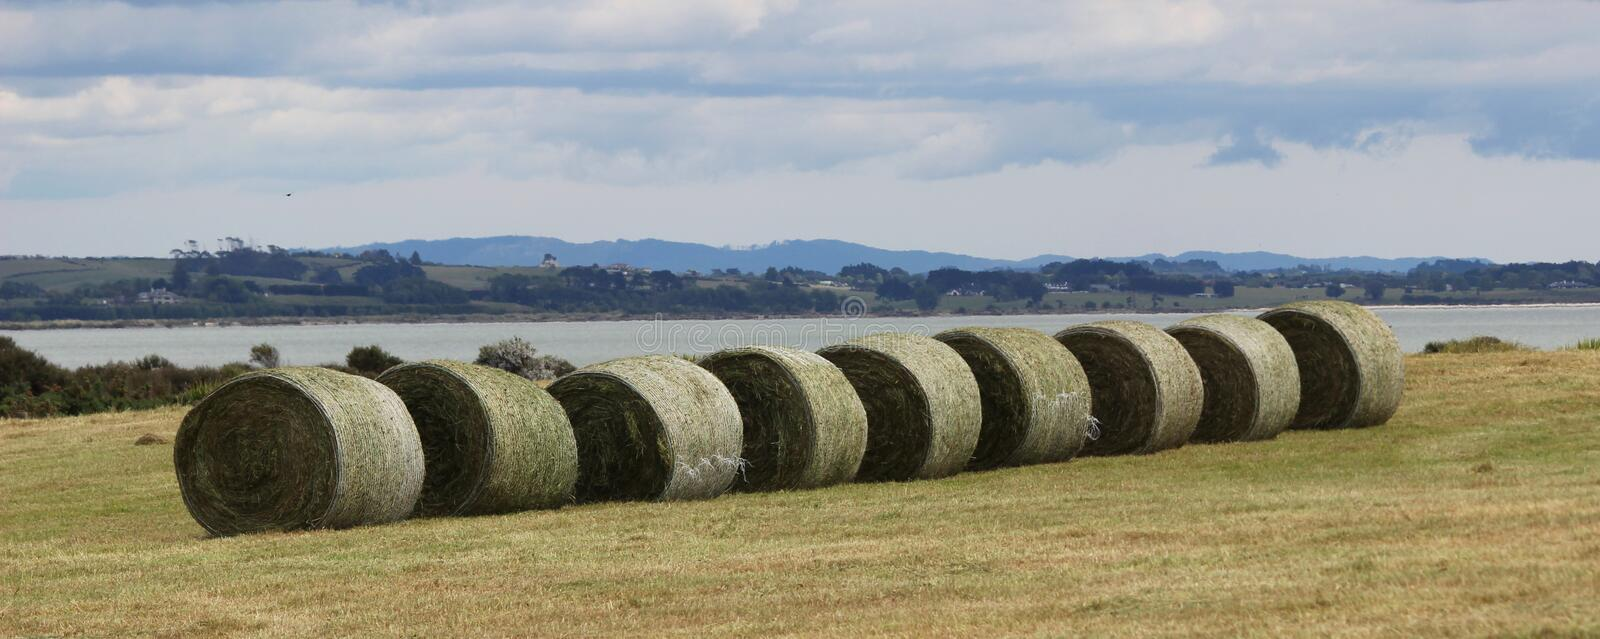 Hay Bails Auckland New Zealand images stock